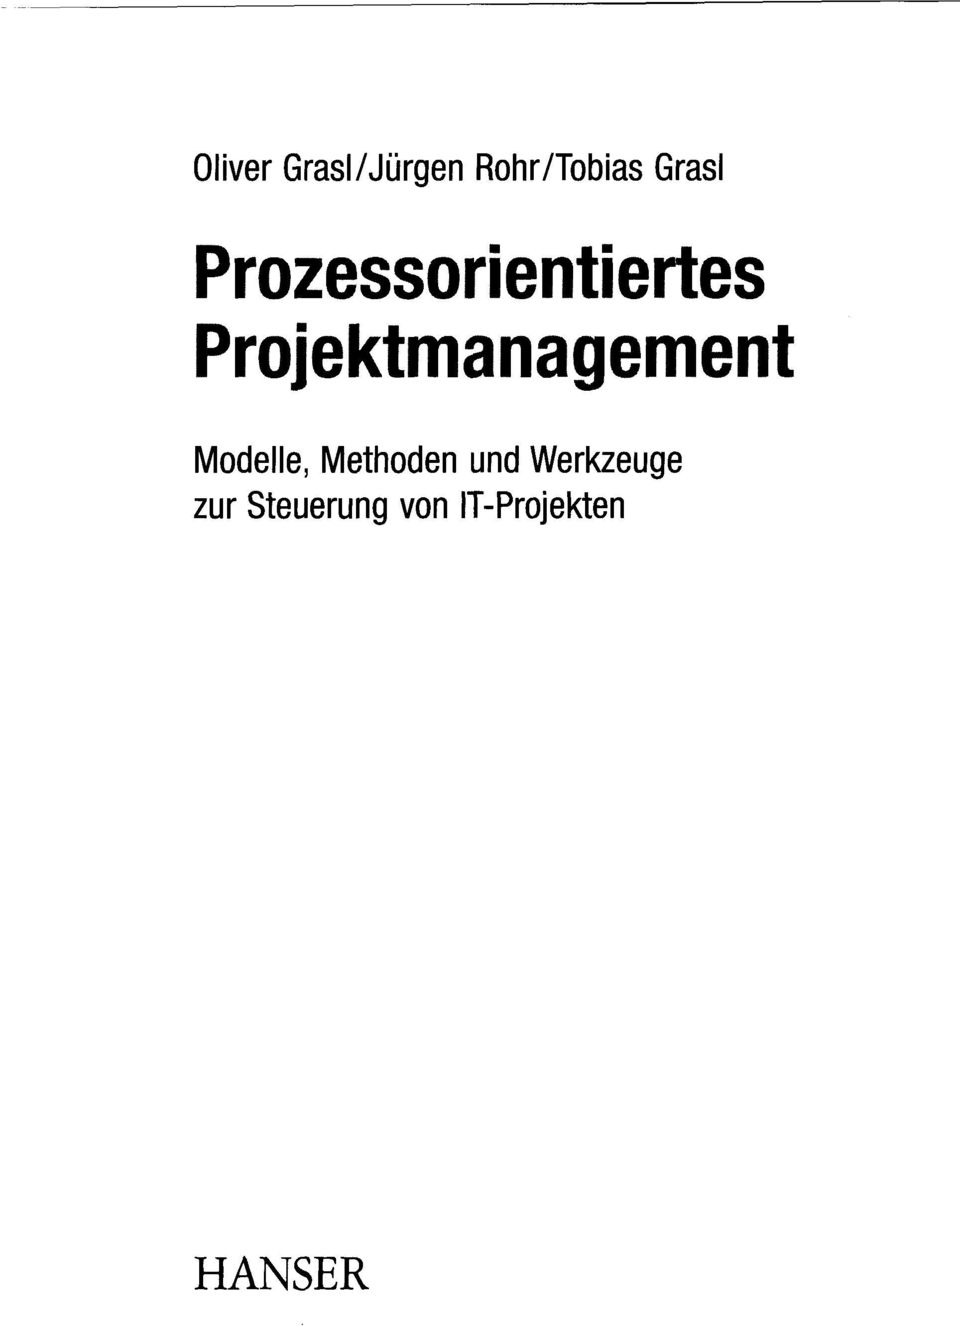 Projektmanagement Modelle, Methoden